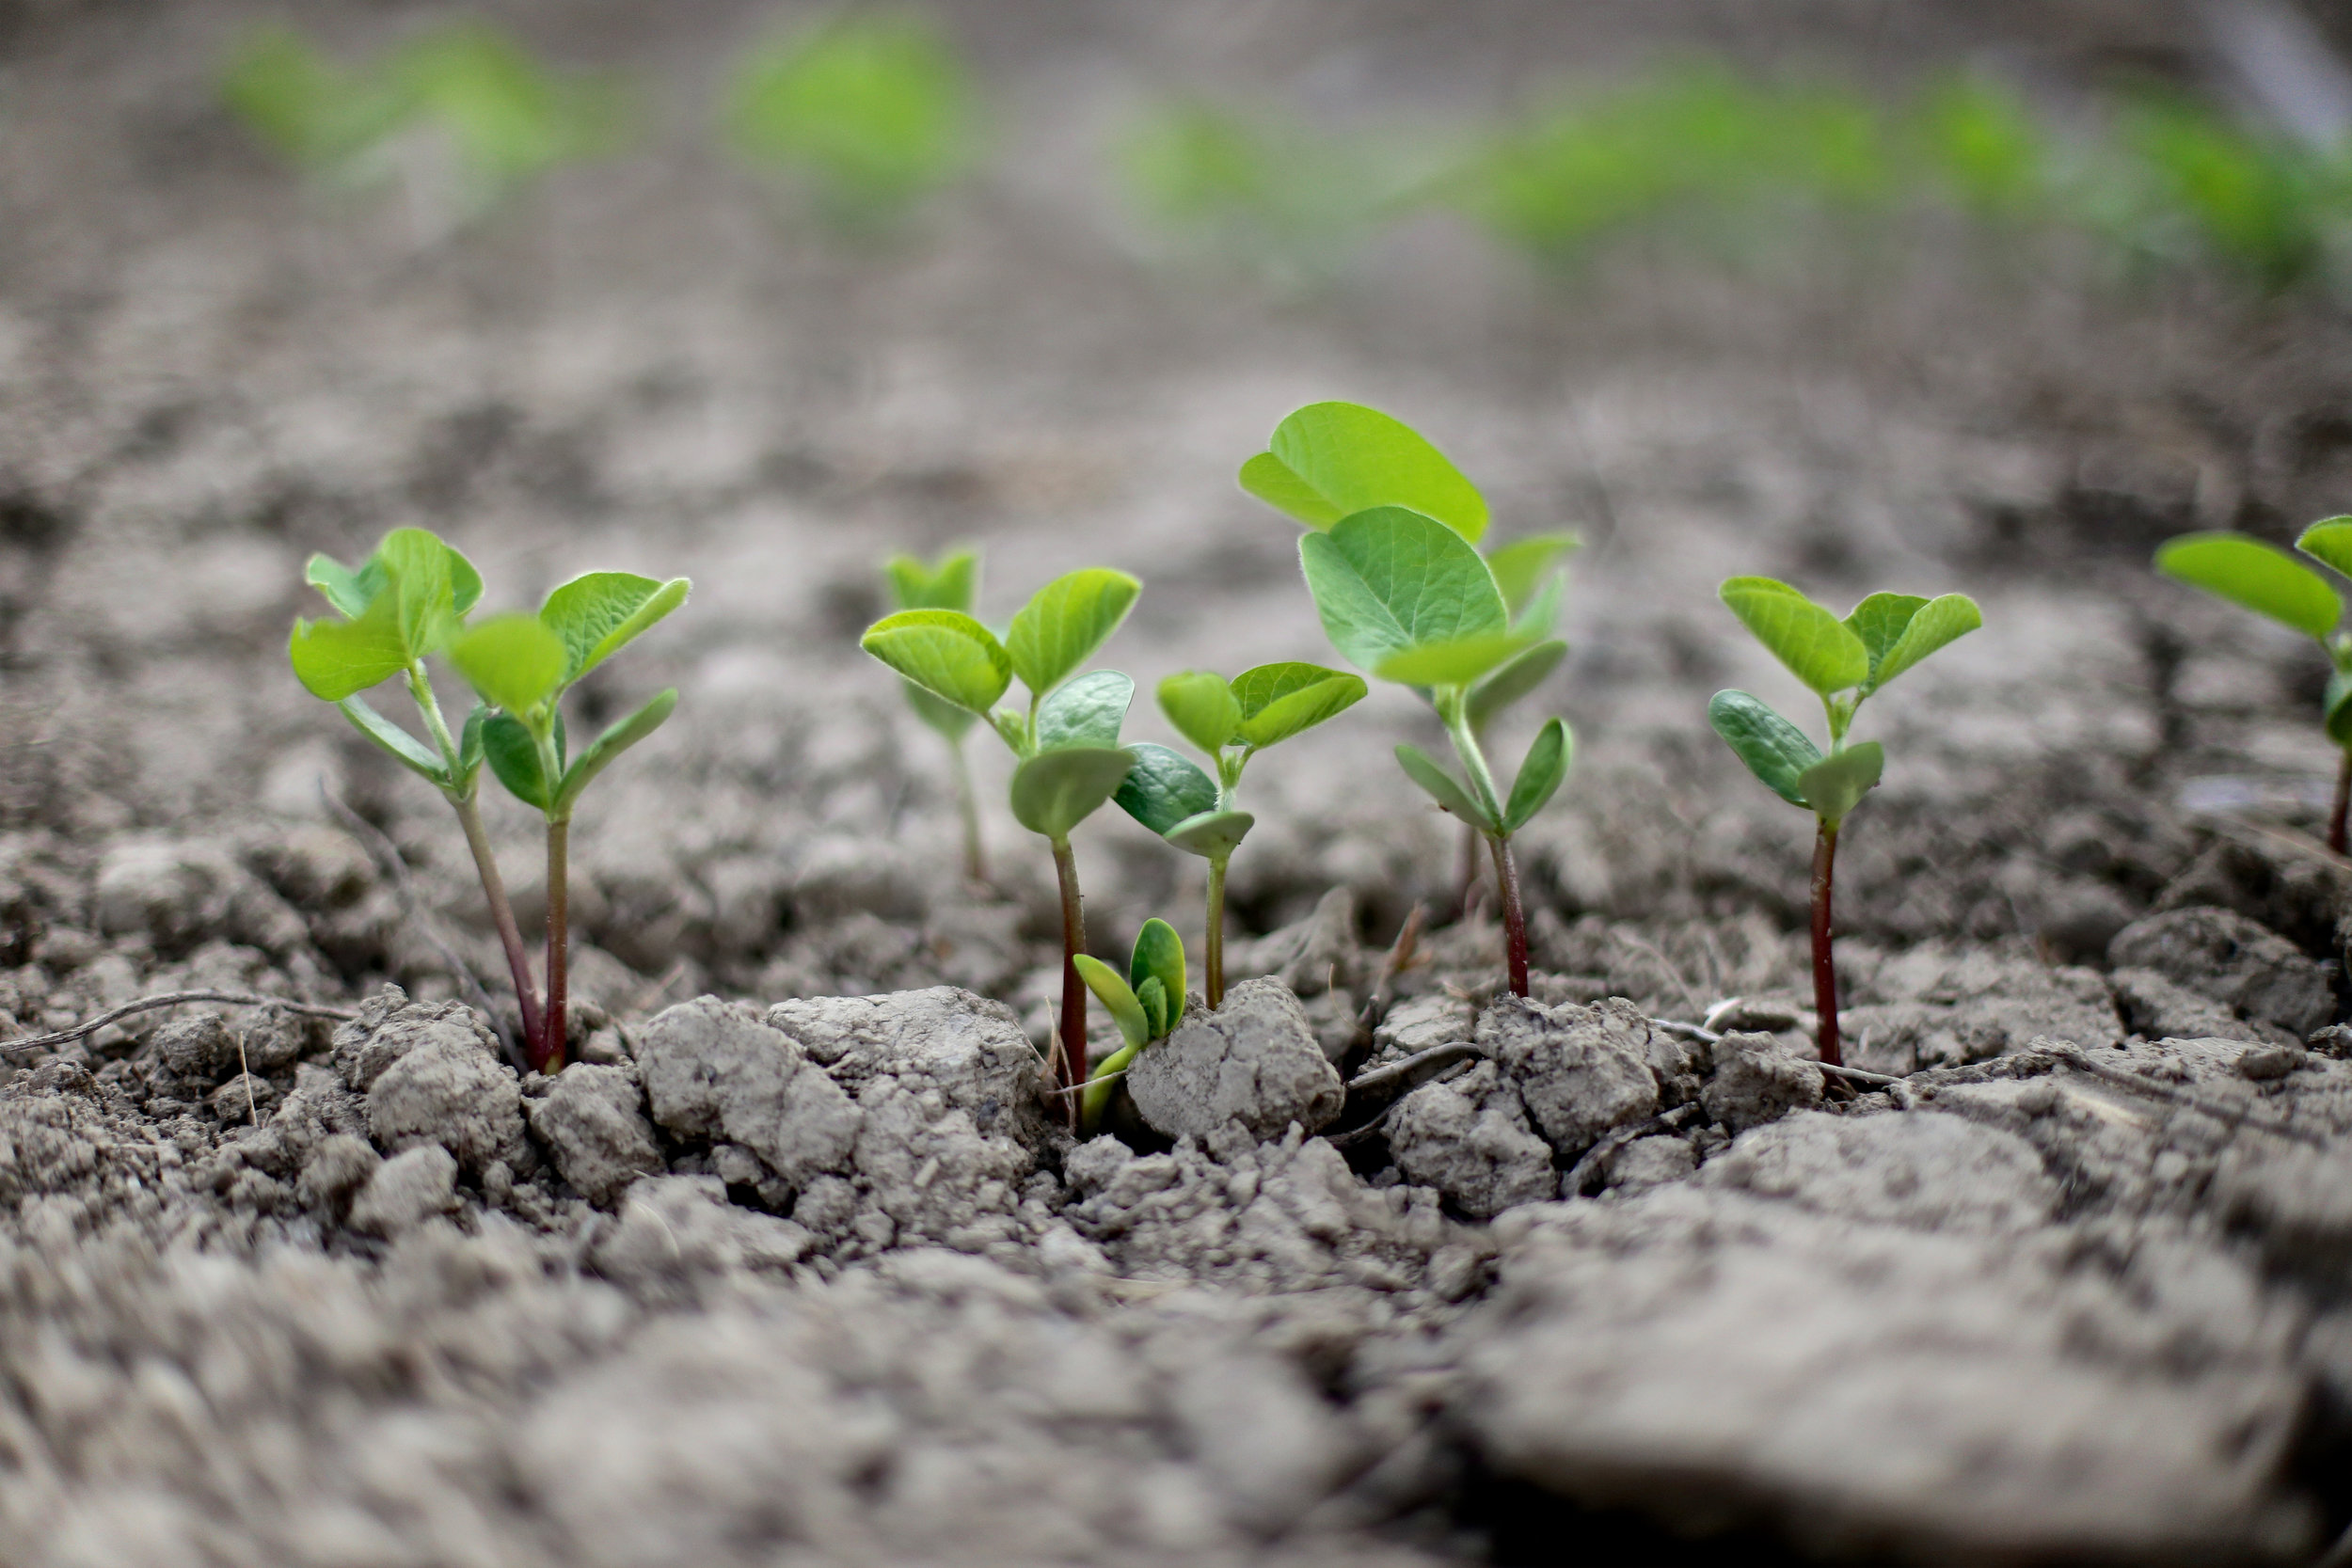 SquarespaceImage19-soybeans-sprouting.jpg